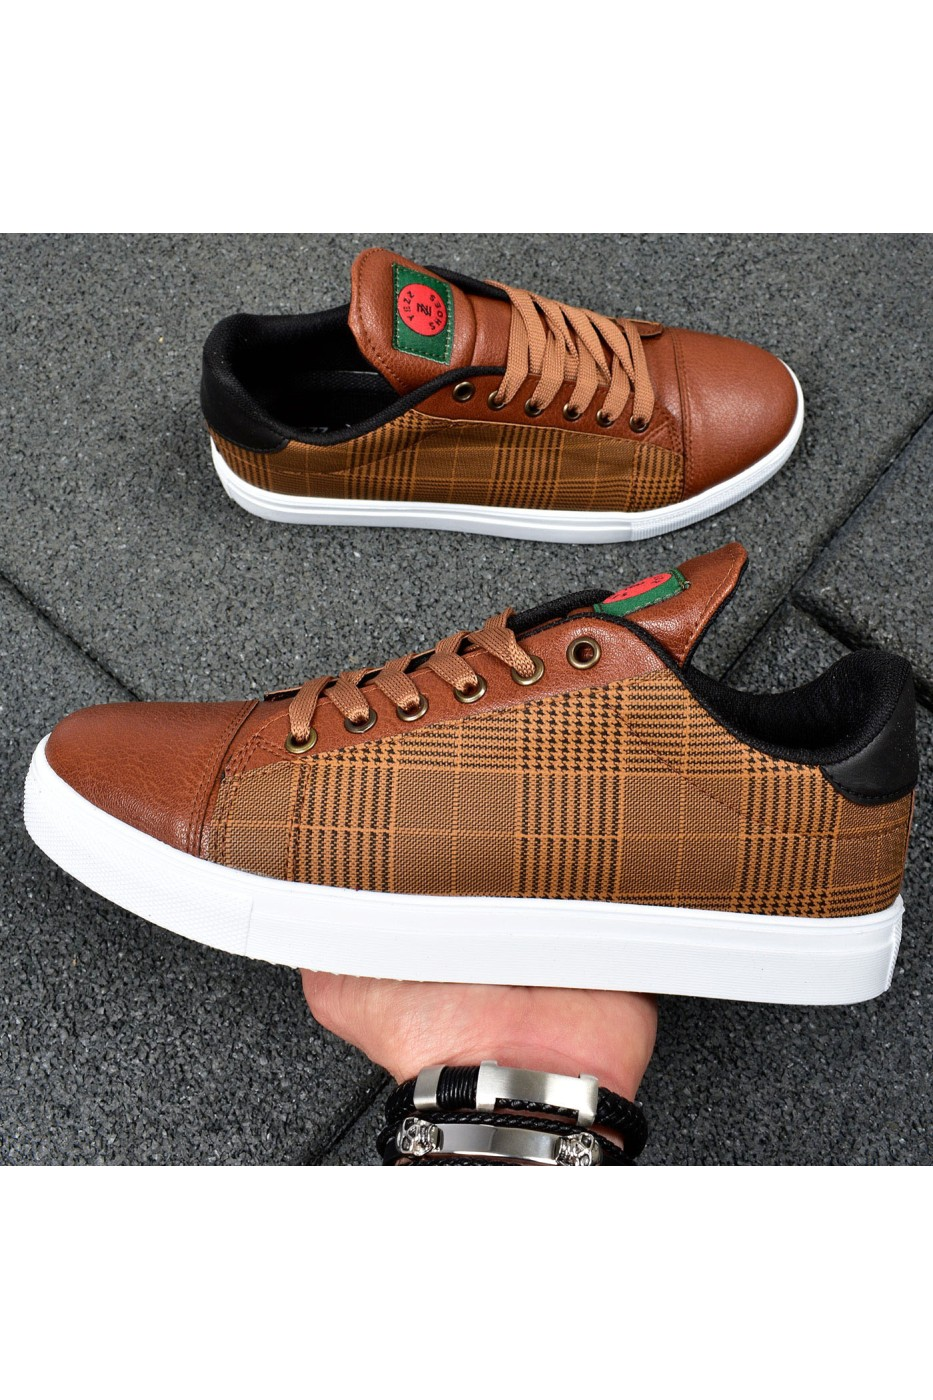 Yezz Sneakers Brown - 015